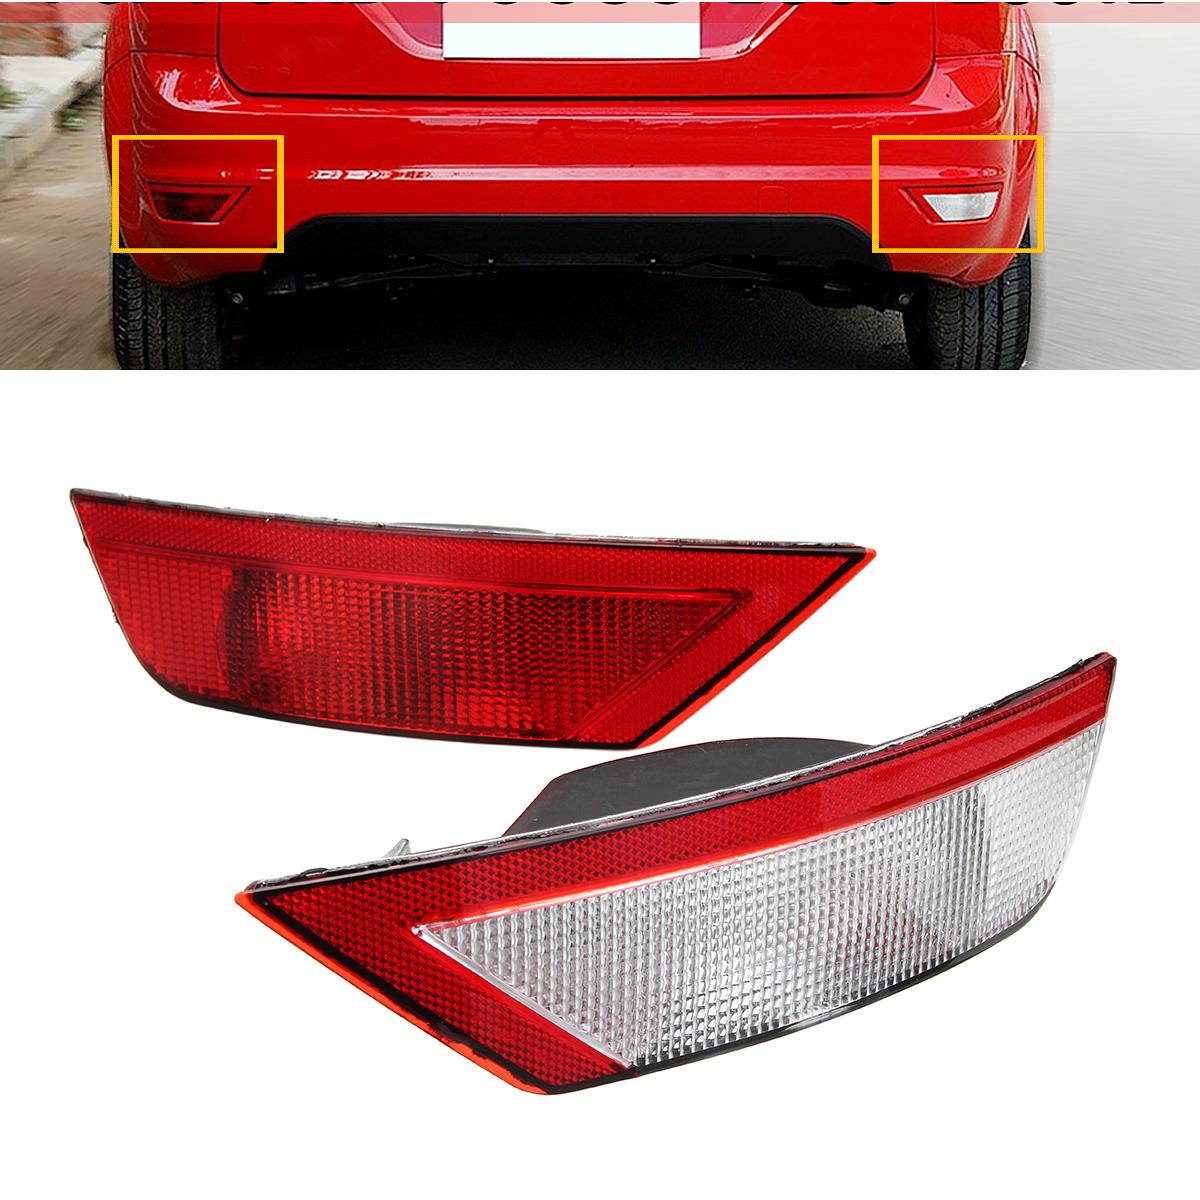 Daytime Running Lights  Right Side Rear Tail Fog Light Bumper Reflector For Ford Focus